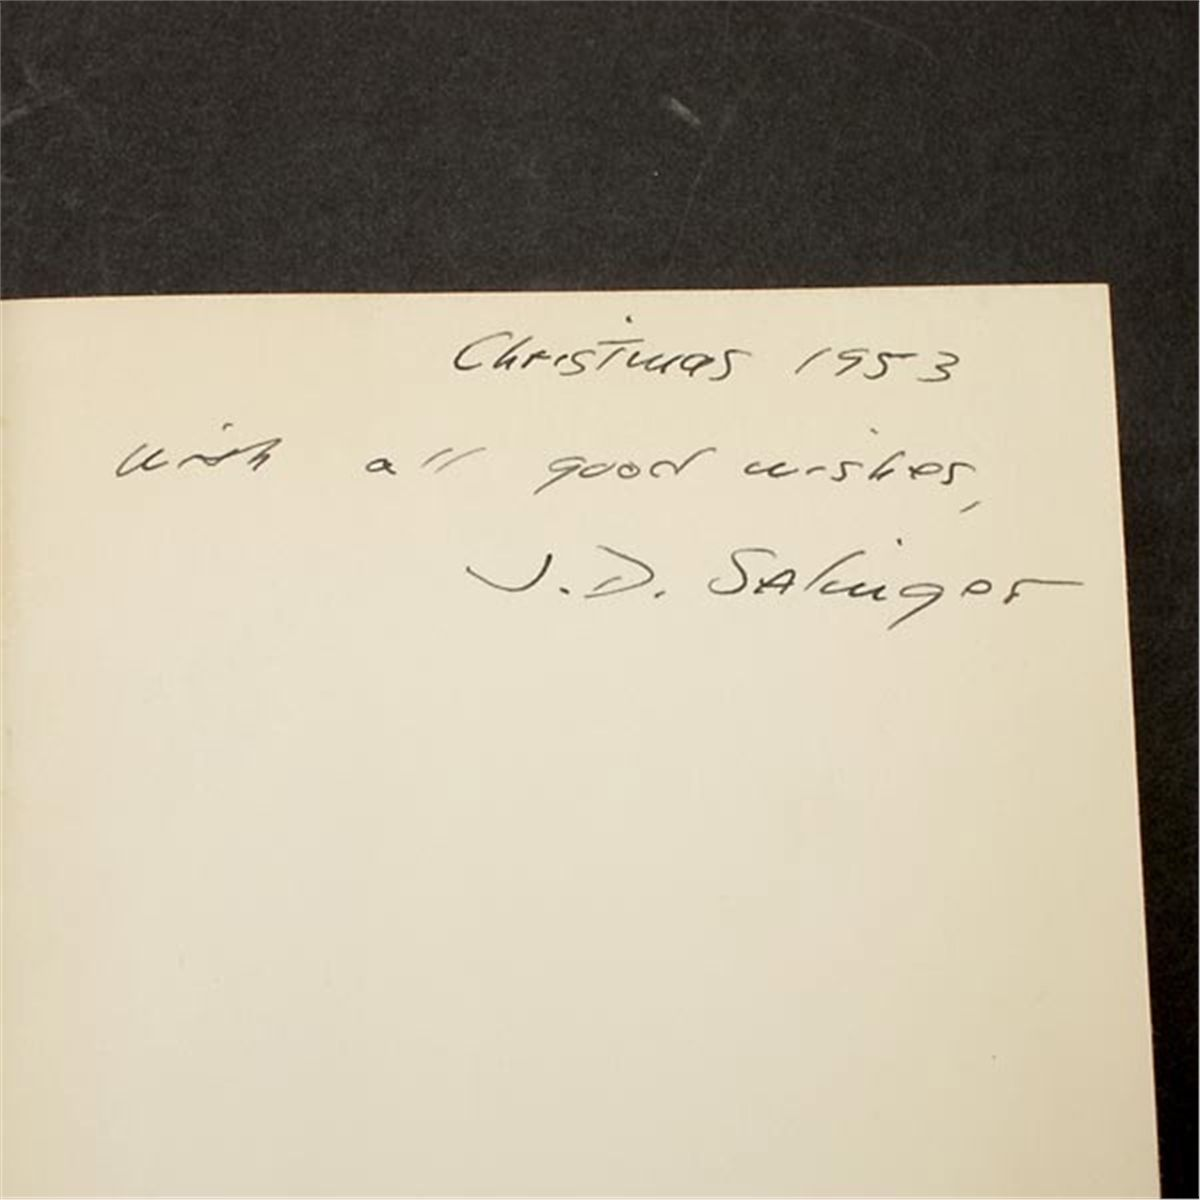 j d salinger essay J d salinger: country: united  in his short 1977 book zen in the art of j d salinger, observes that franny and zooey could be interpreted as a  in an essay.